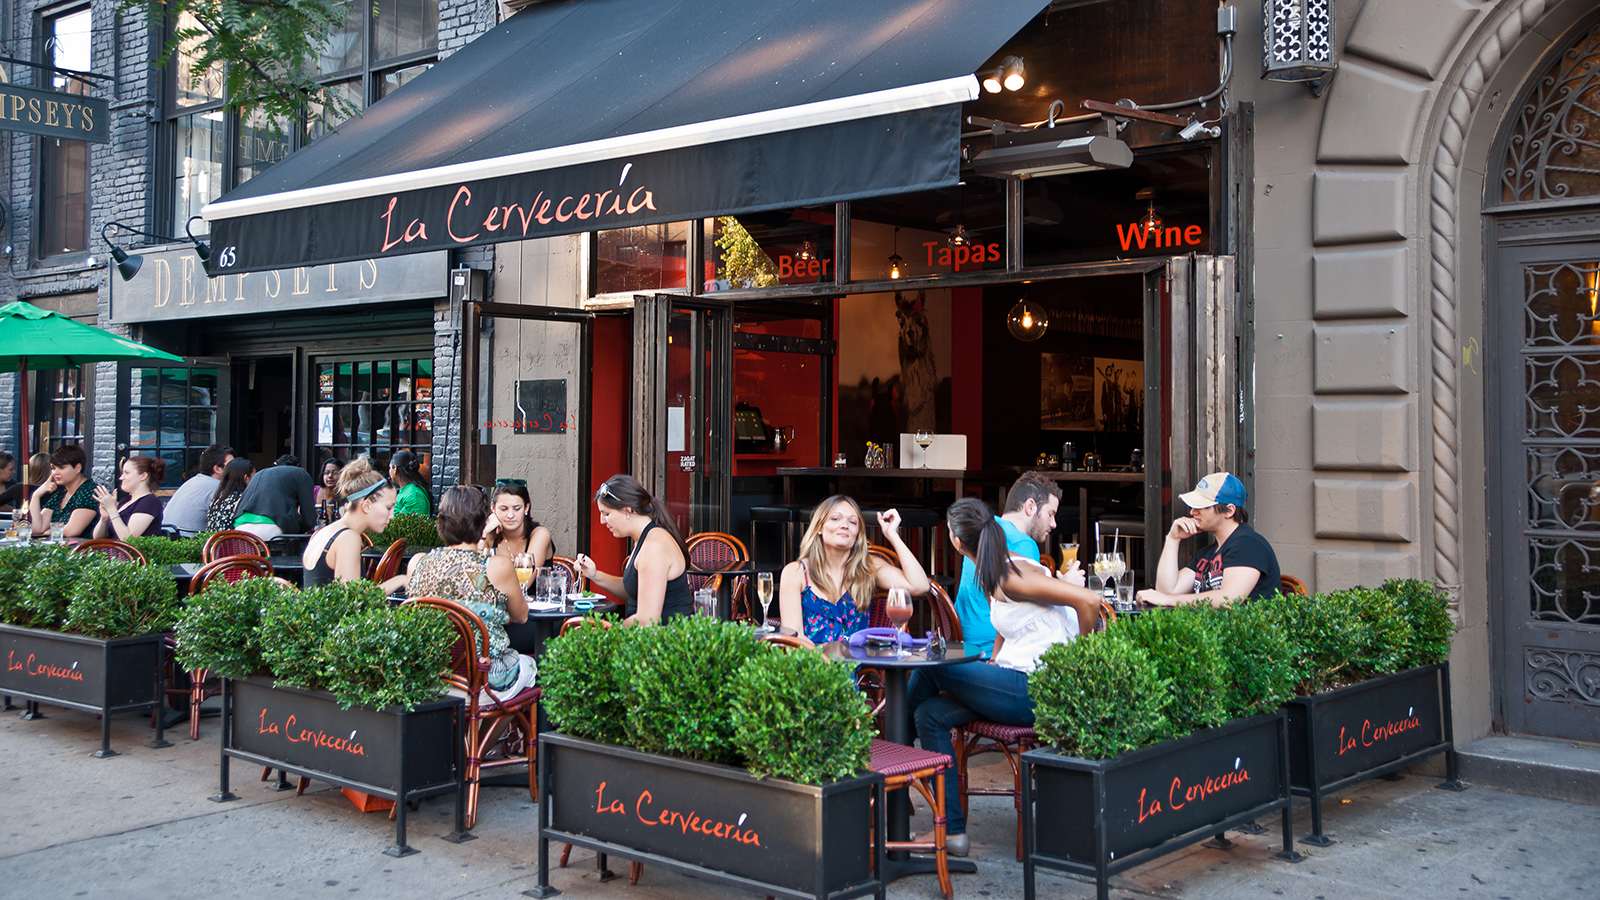 Glimpses of nyc 39 s restaurants for pure soul lovers that for Best valentines restaurants nyc